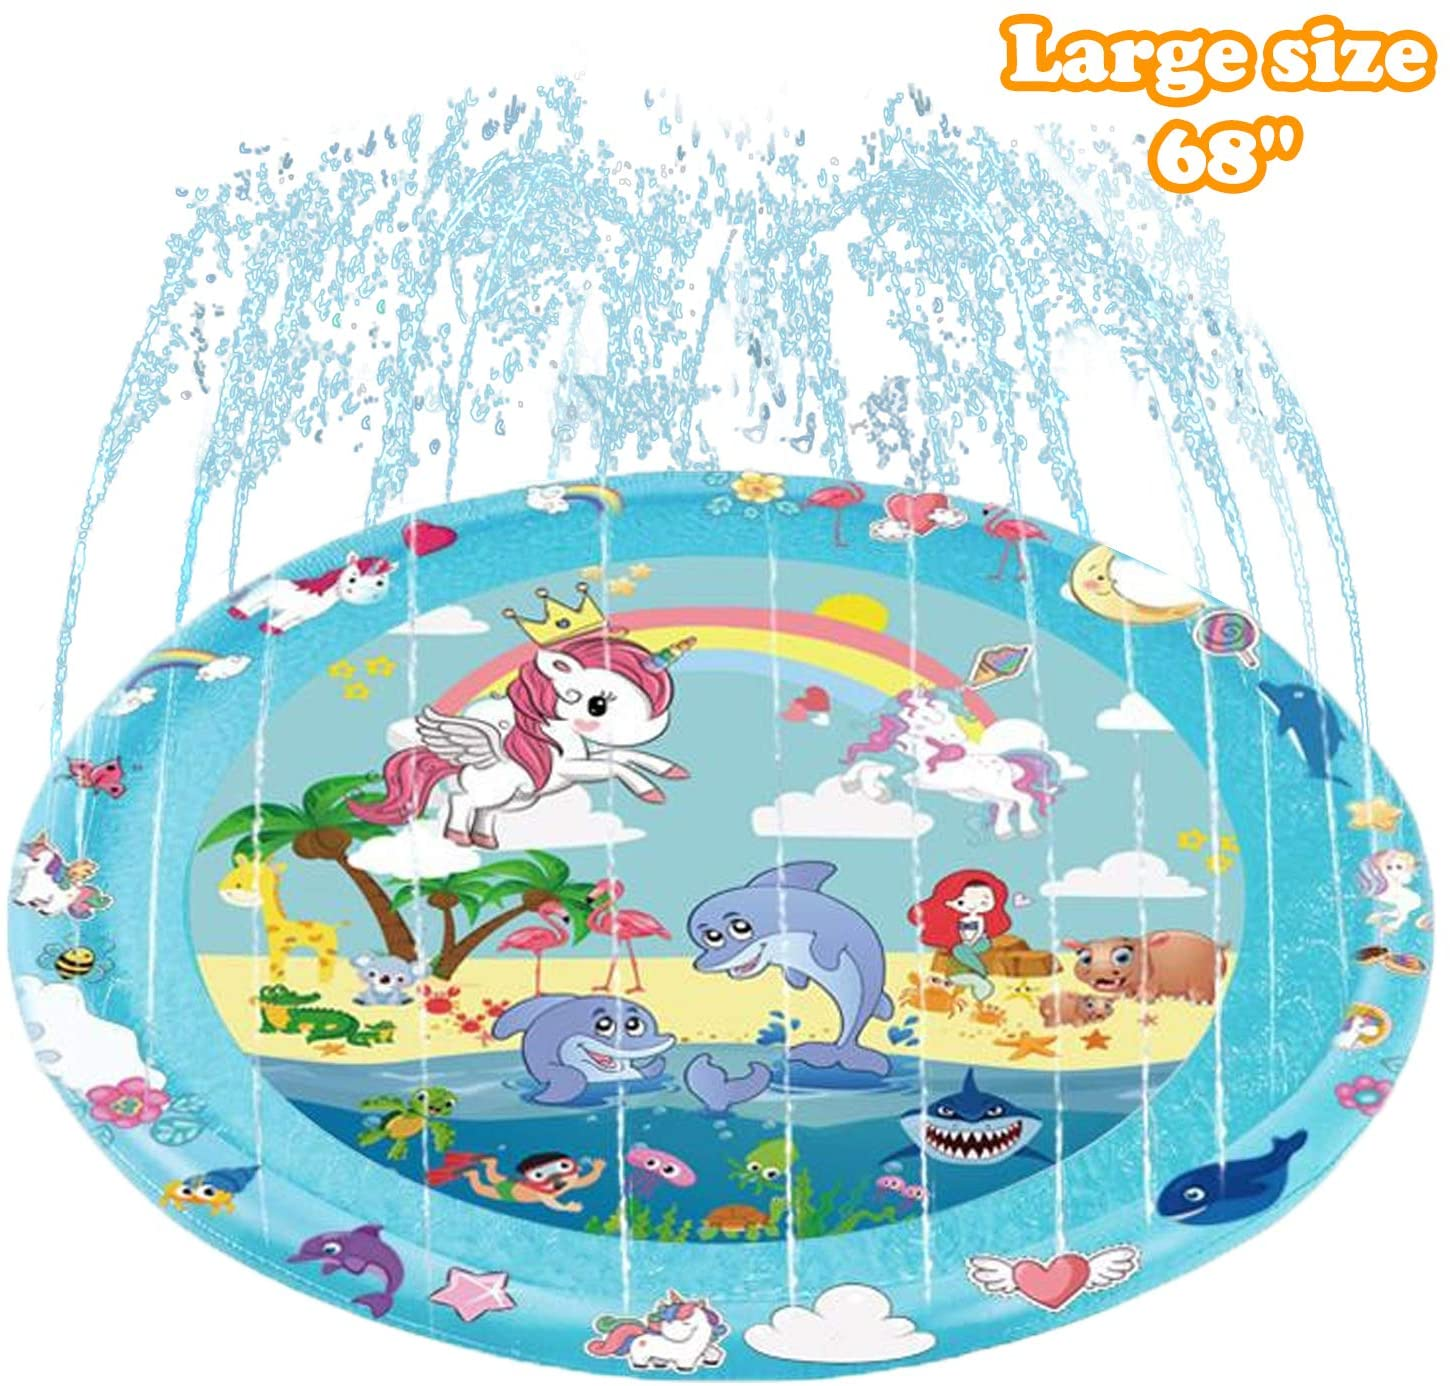 TAISHAN Sprinkle & Splash Play Mat,68'' Children's Sprinkler Pool,Upgraded Summer Outdoor Water Toys Wading Pool Splash pad,Outside Water Play Mat for 1-12 Children Boys Girls (Bluegreen-Unicorn)